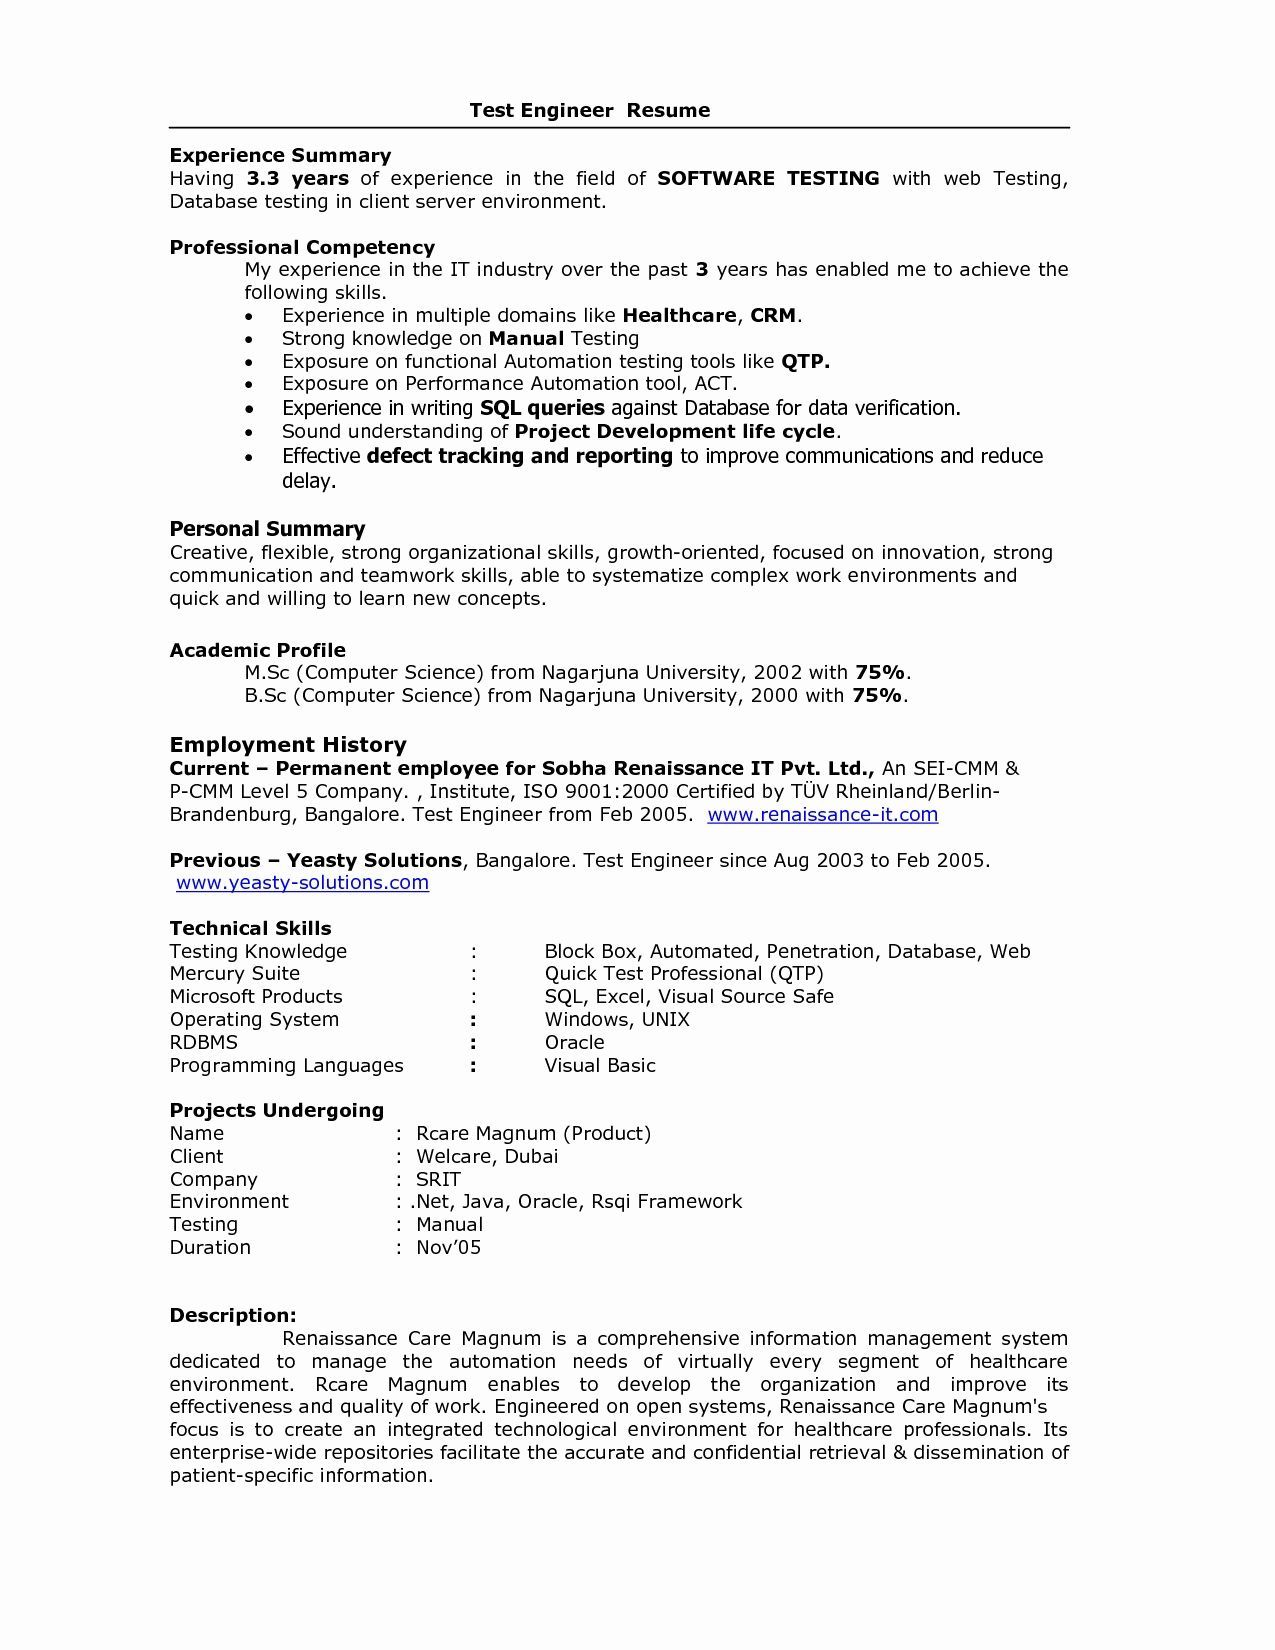 resume format for years experience in testing best software sample entry level tester Resume Entry Level Software Tester Resume Sample